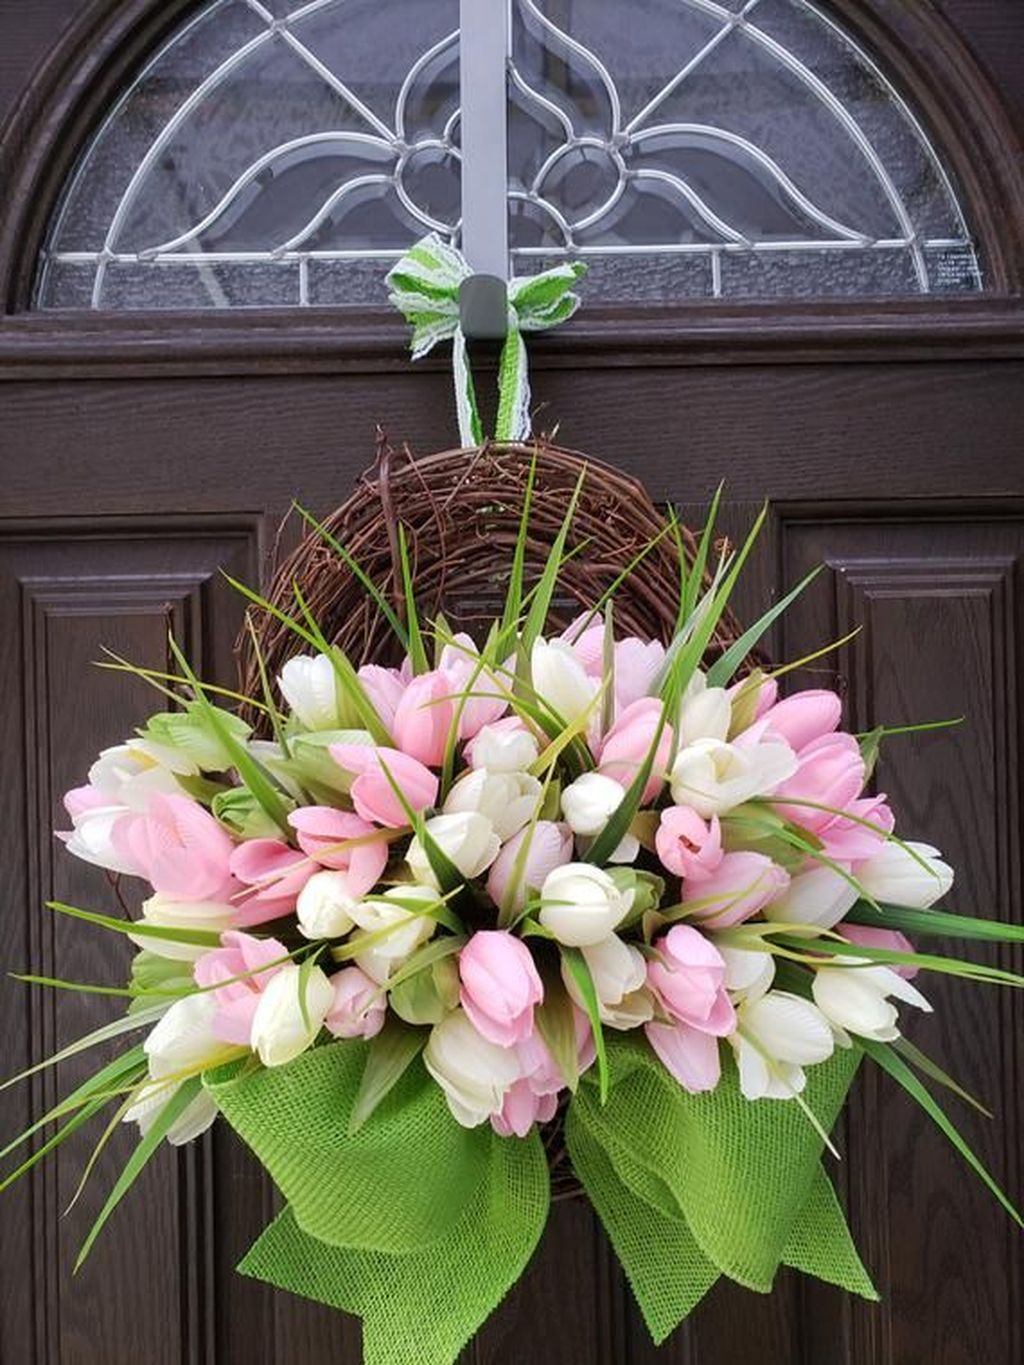 Fabulous Valentine Wreath Design Ideas FOr Your Front Door Decor 33